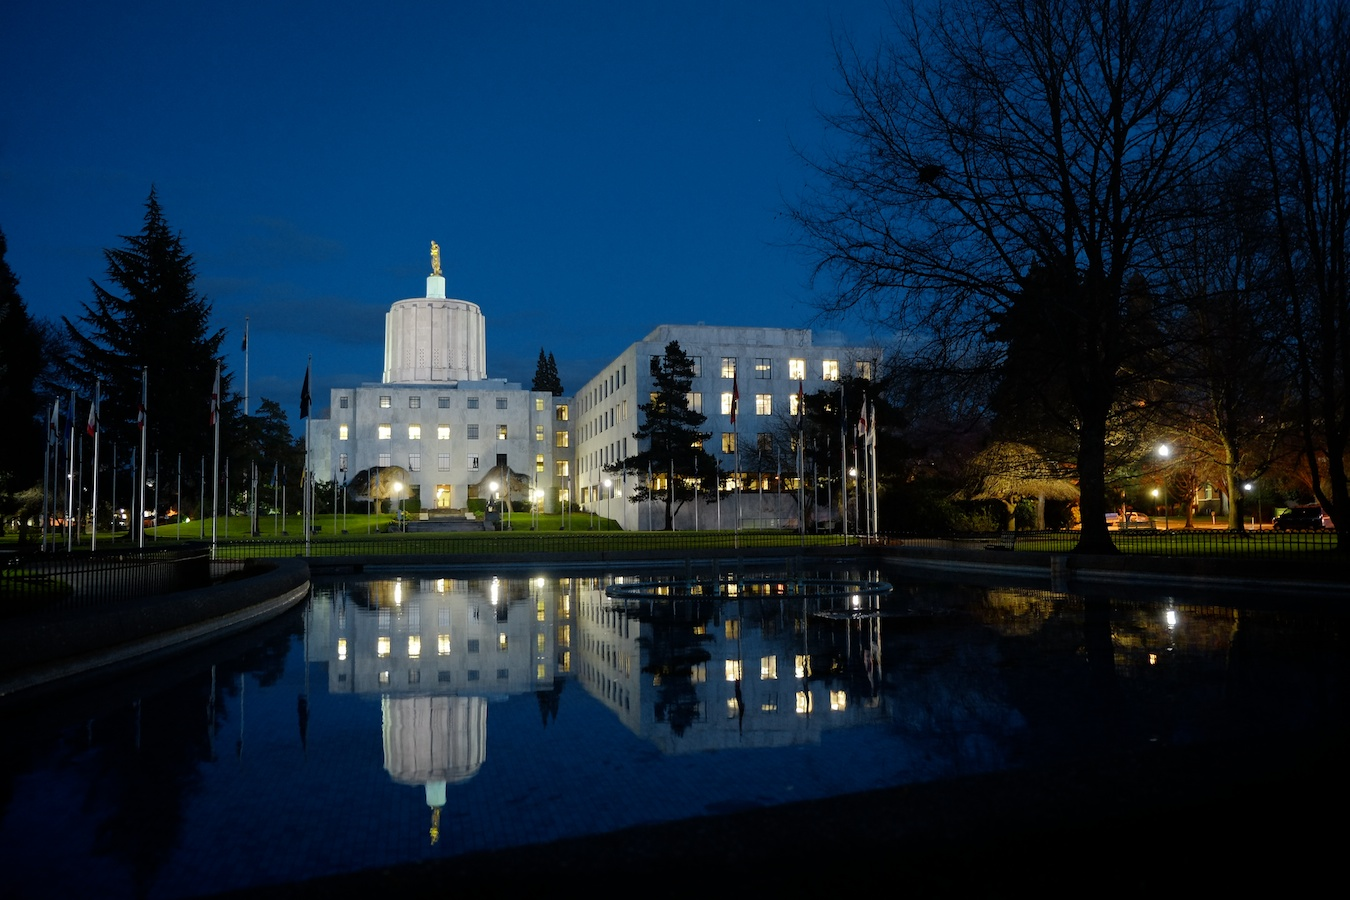 Oregon Capitol Building at Dusk. Fuji X-E1. 18-55mm.